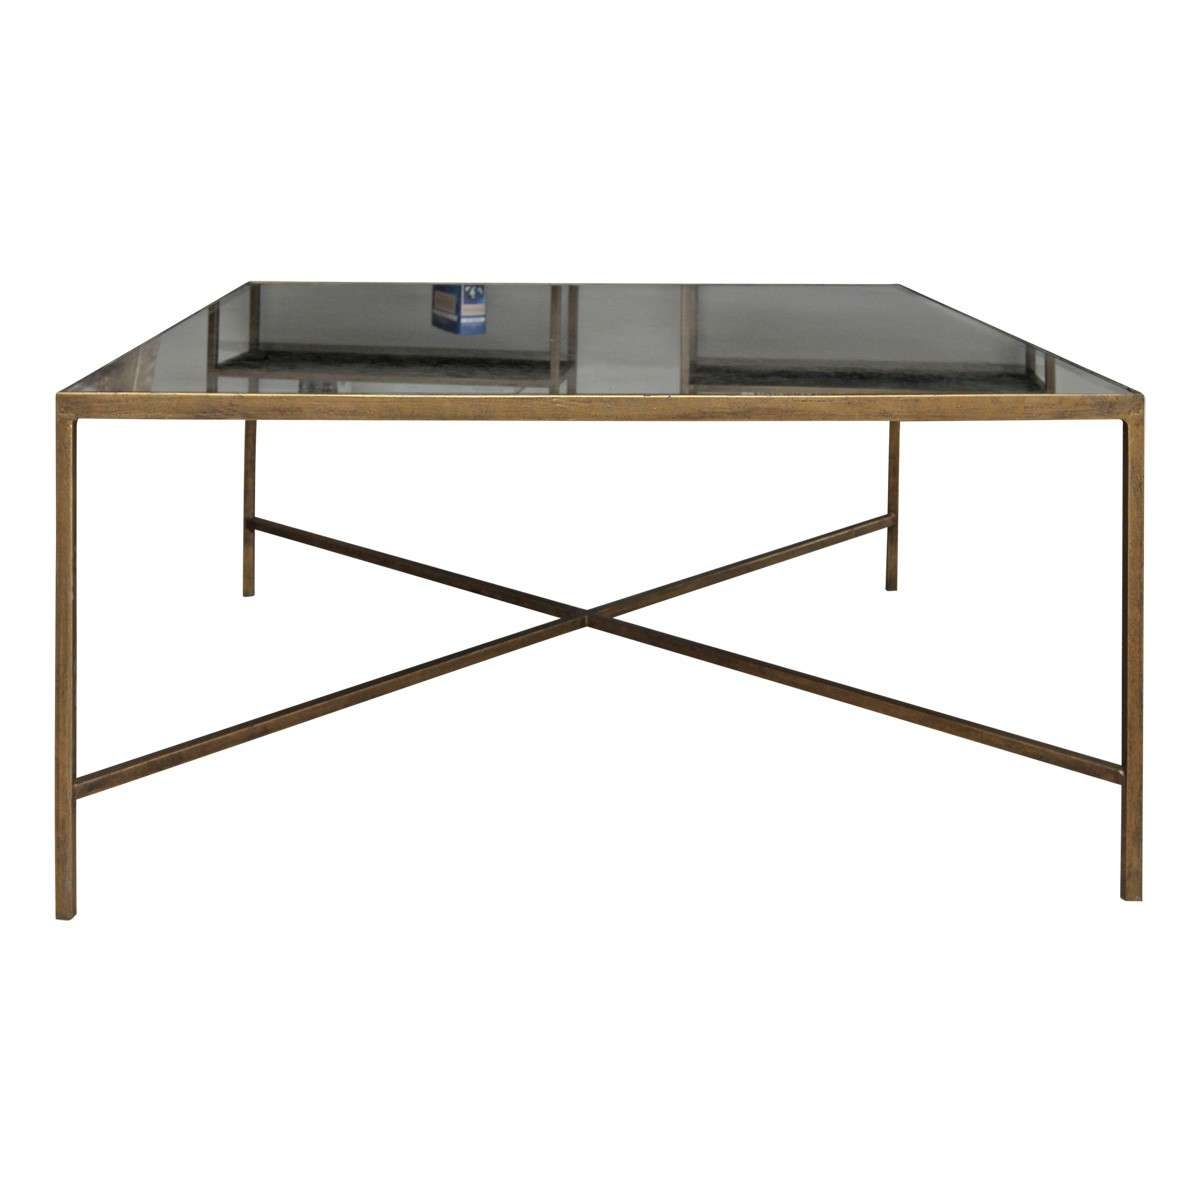 Antiqued Mirrored Coffee Table / Coffee Tables / Thippo In Trendy Antique Mirrored Coffee Tables (View 3 of 20)